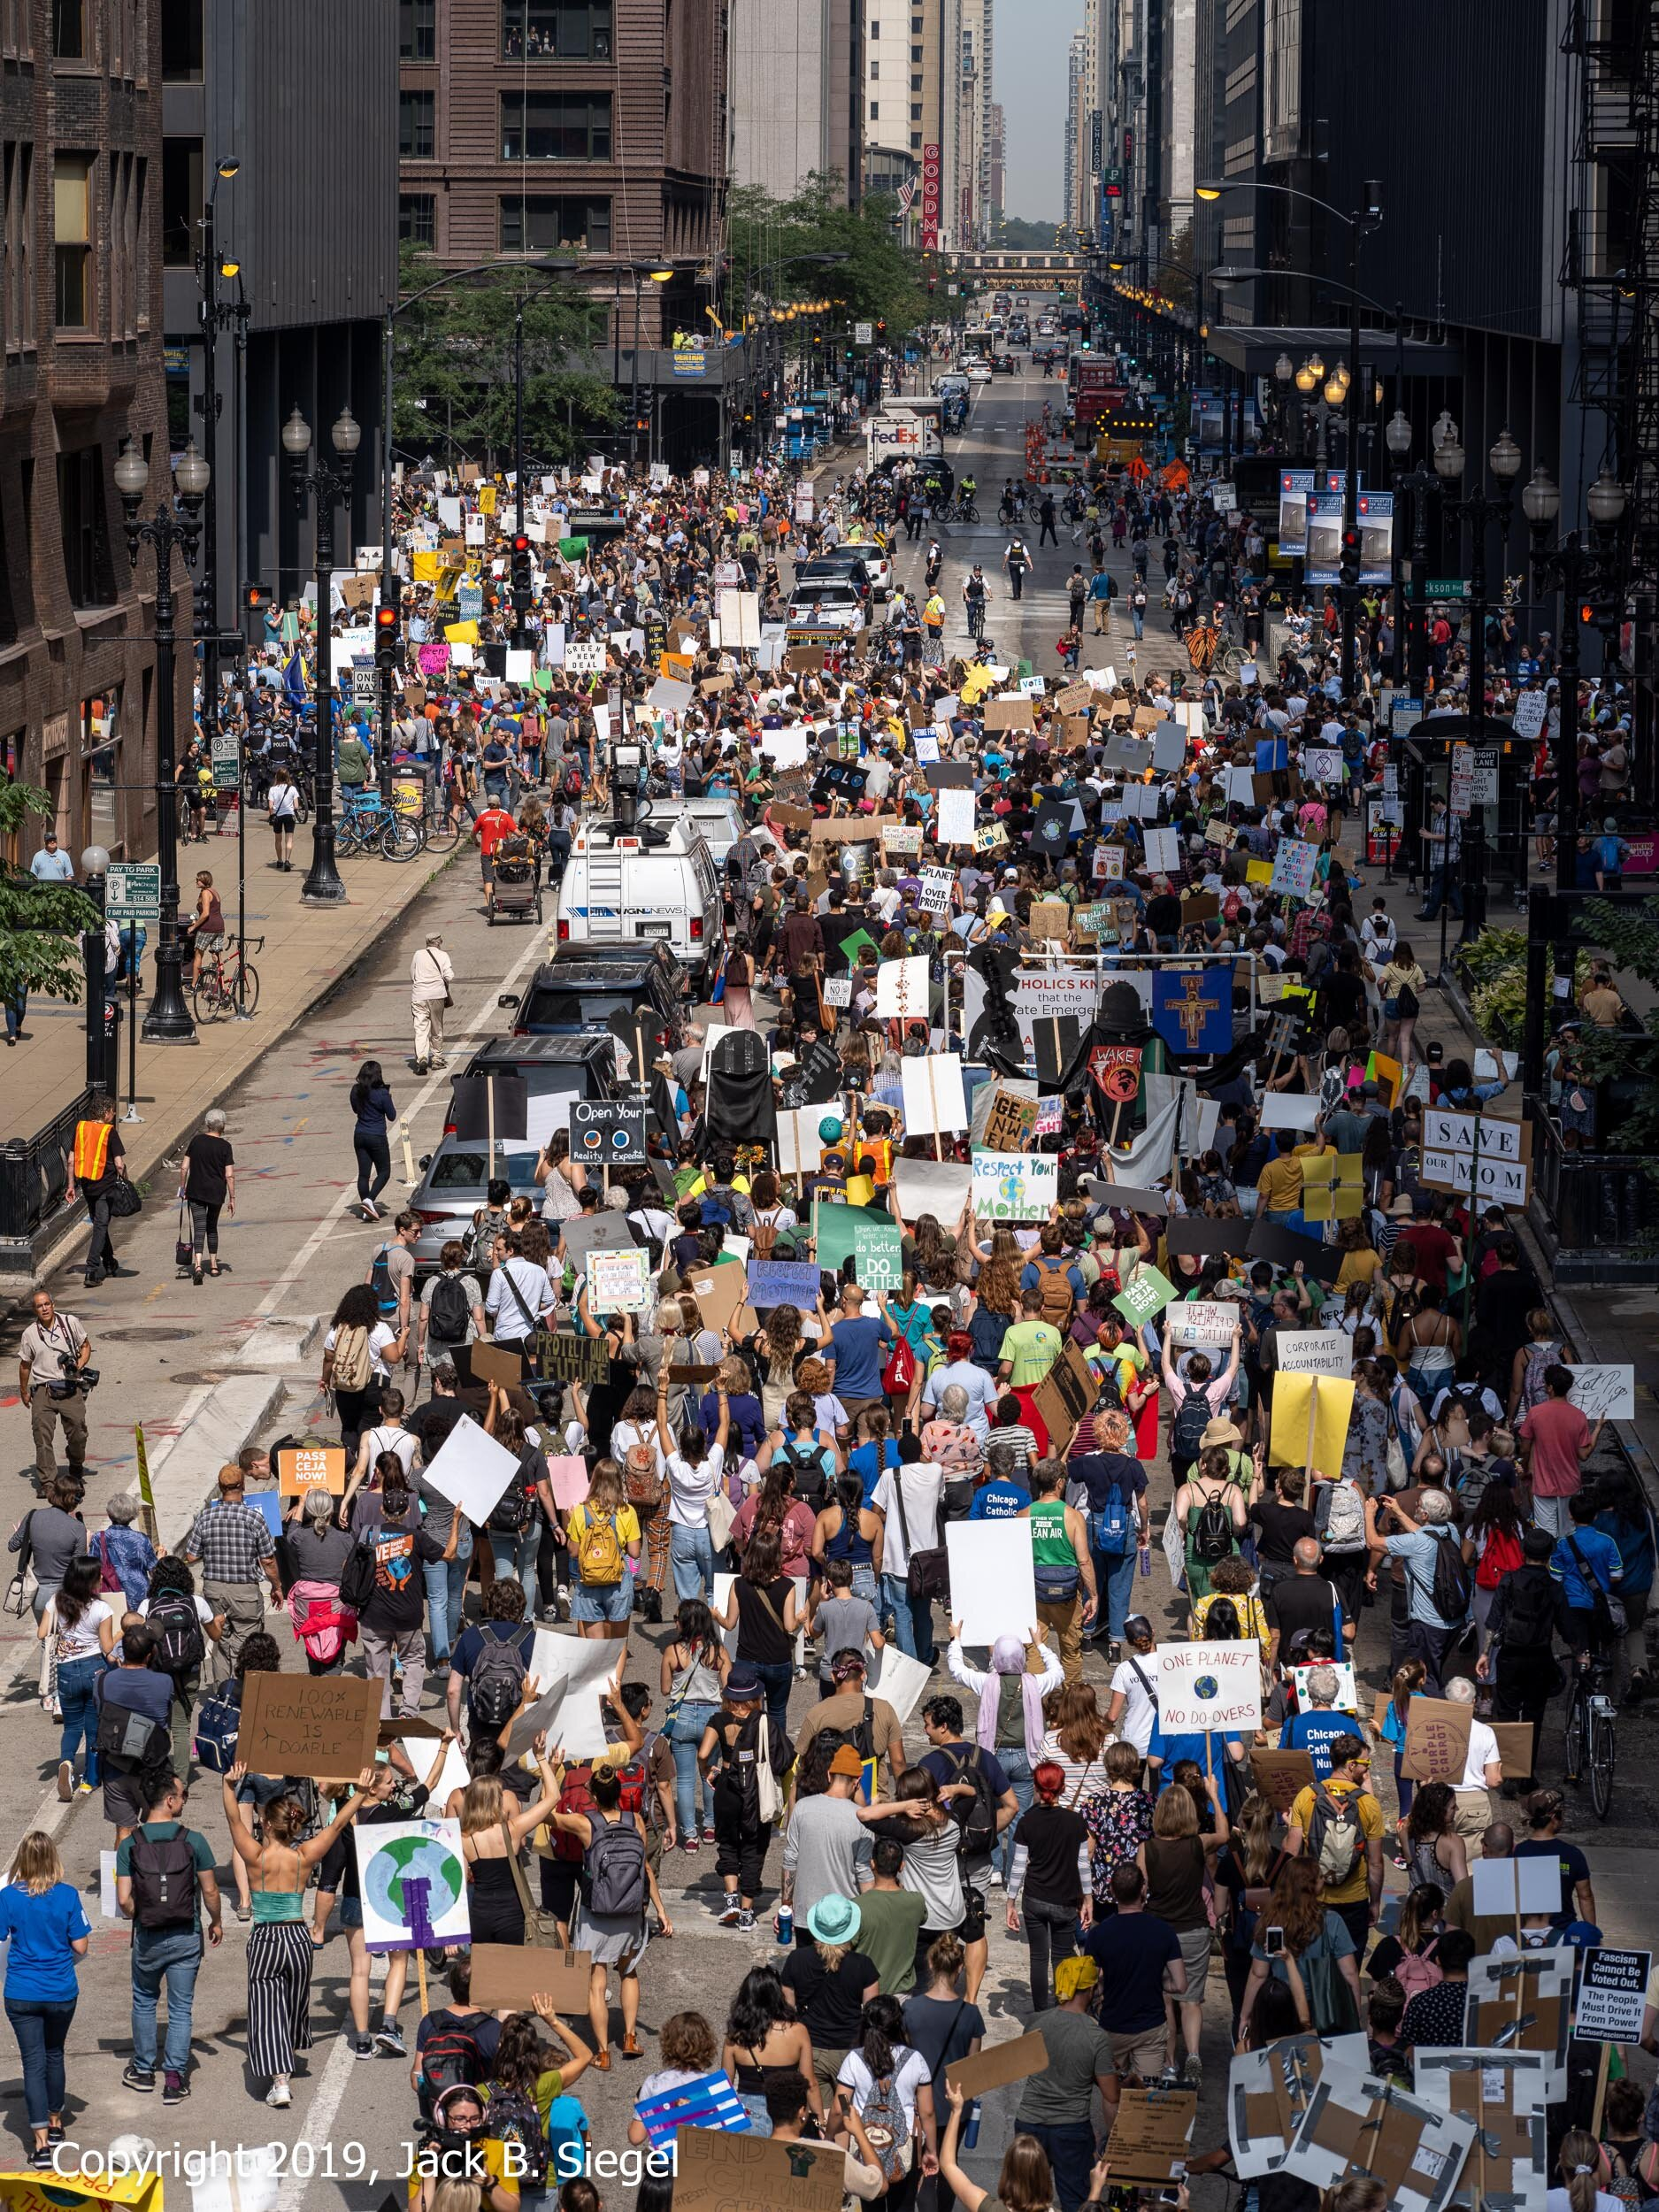 The Demonstrators Head to Federal Plaza